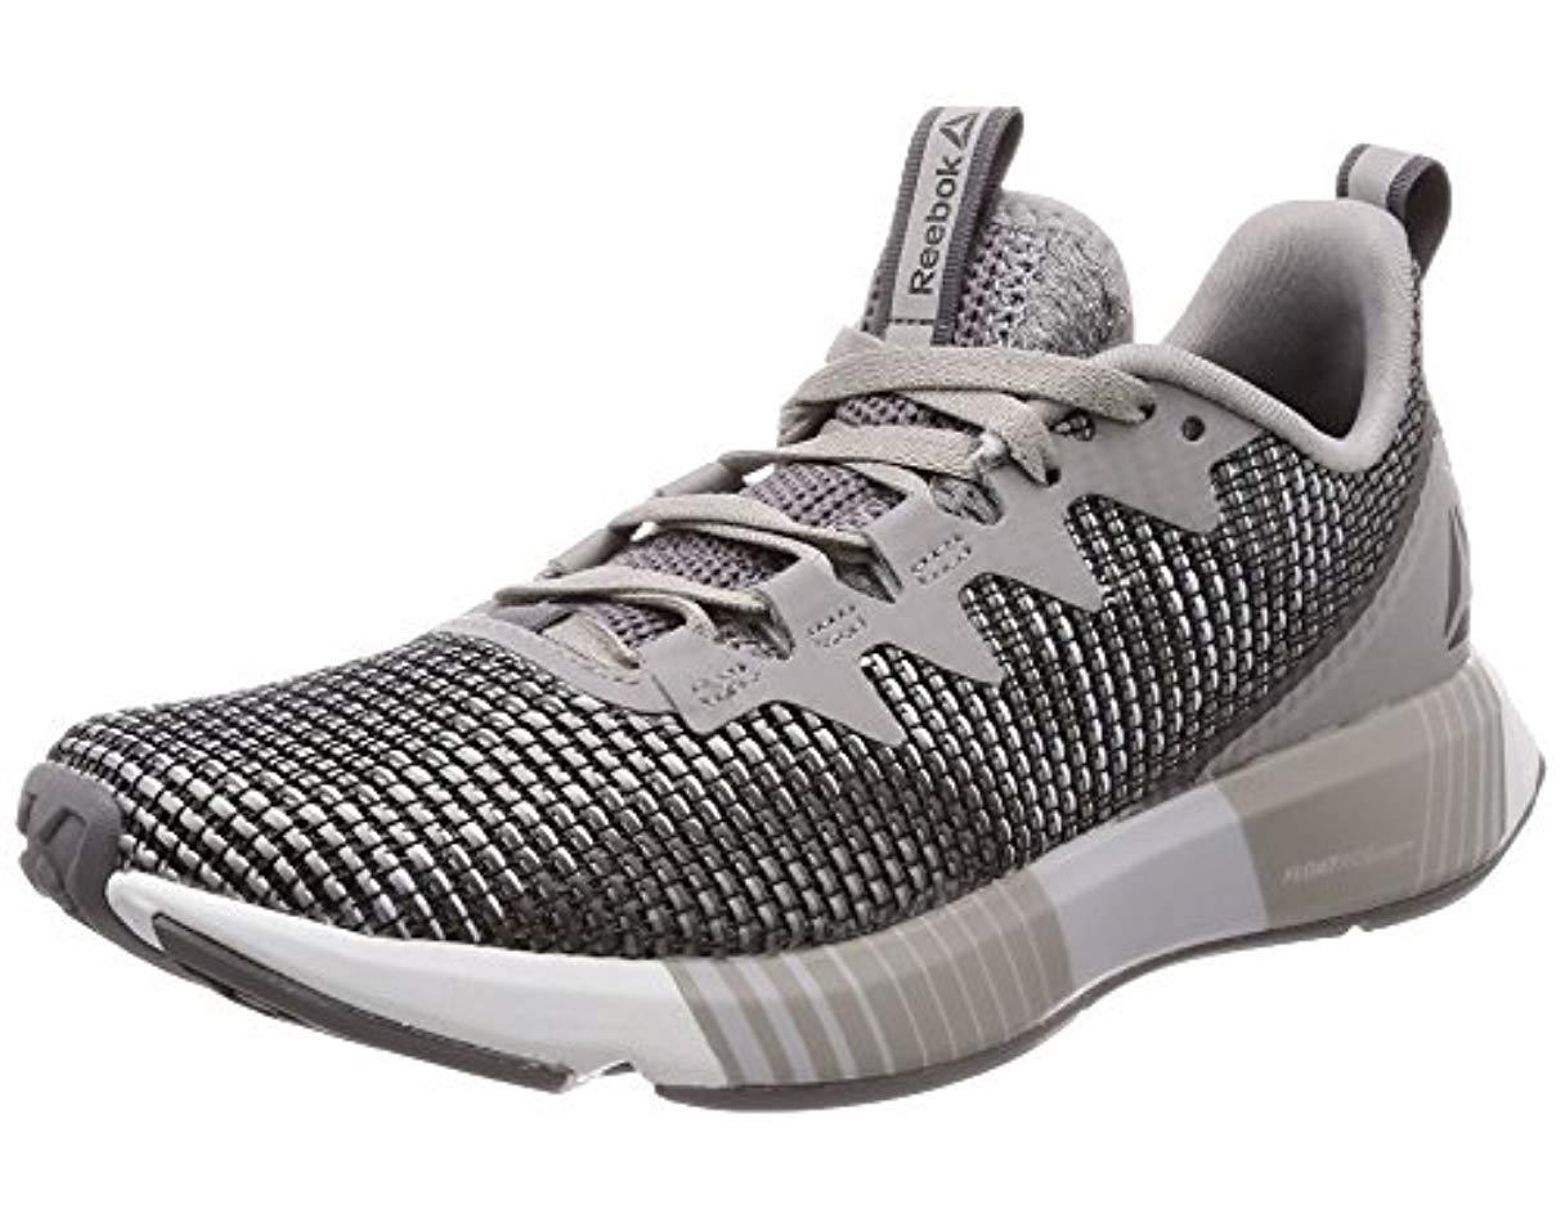 a157d5c410779 Reebok Fusion Flexweave Trail Running Shoes in Gray - Save 78% - Lyst